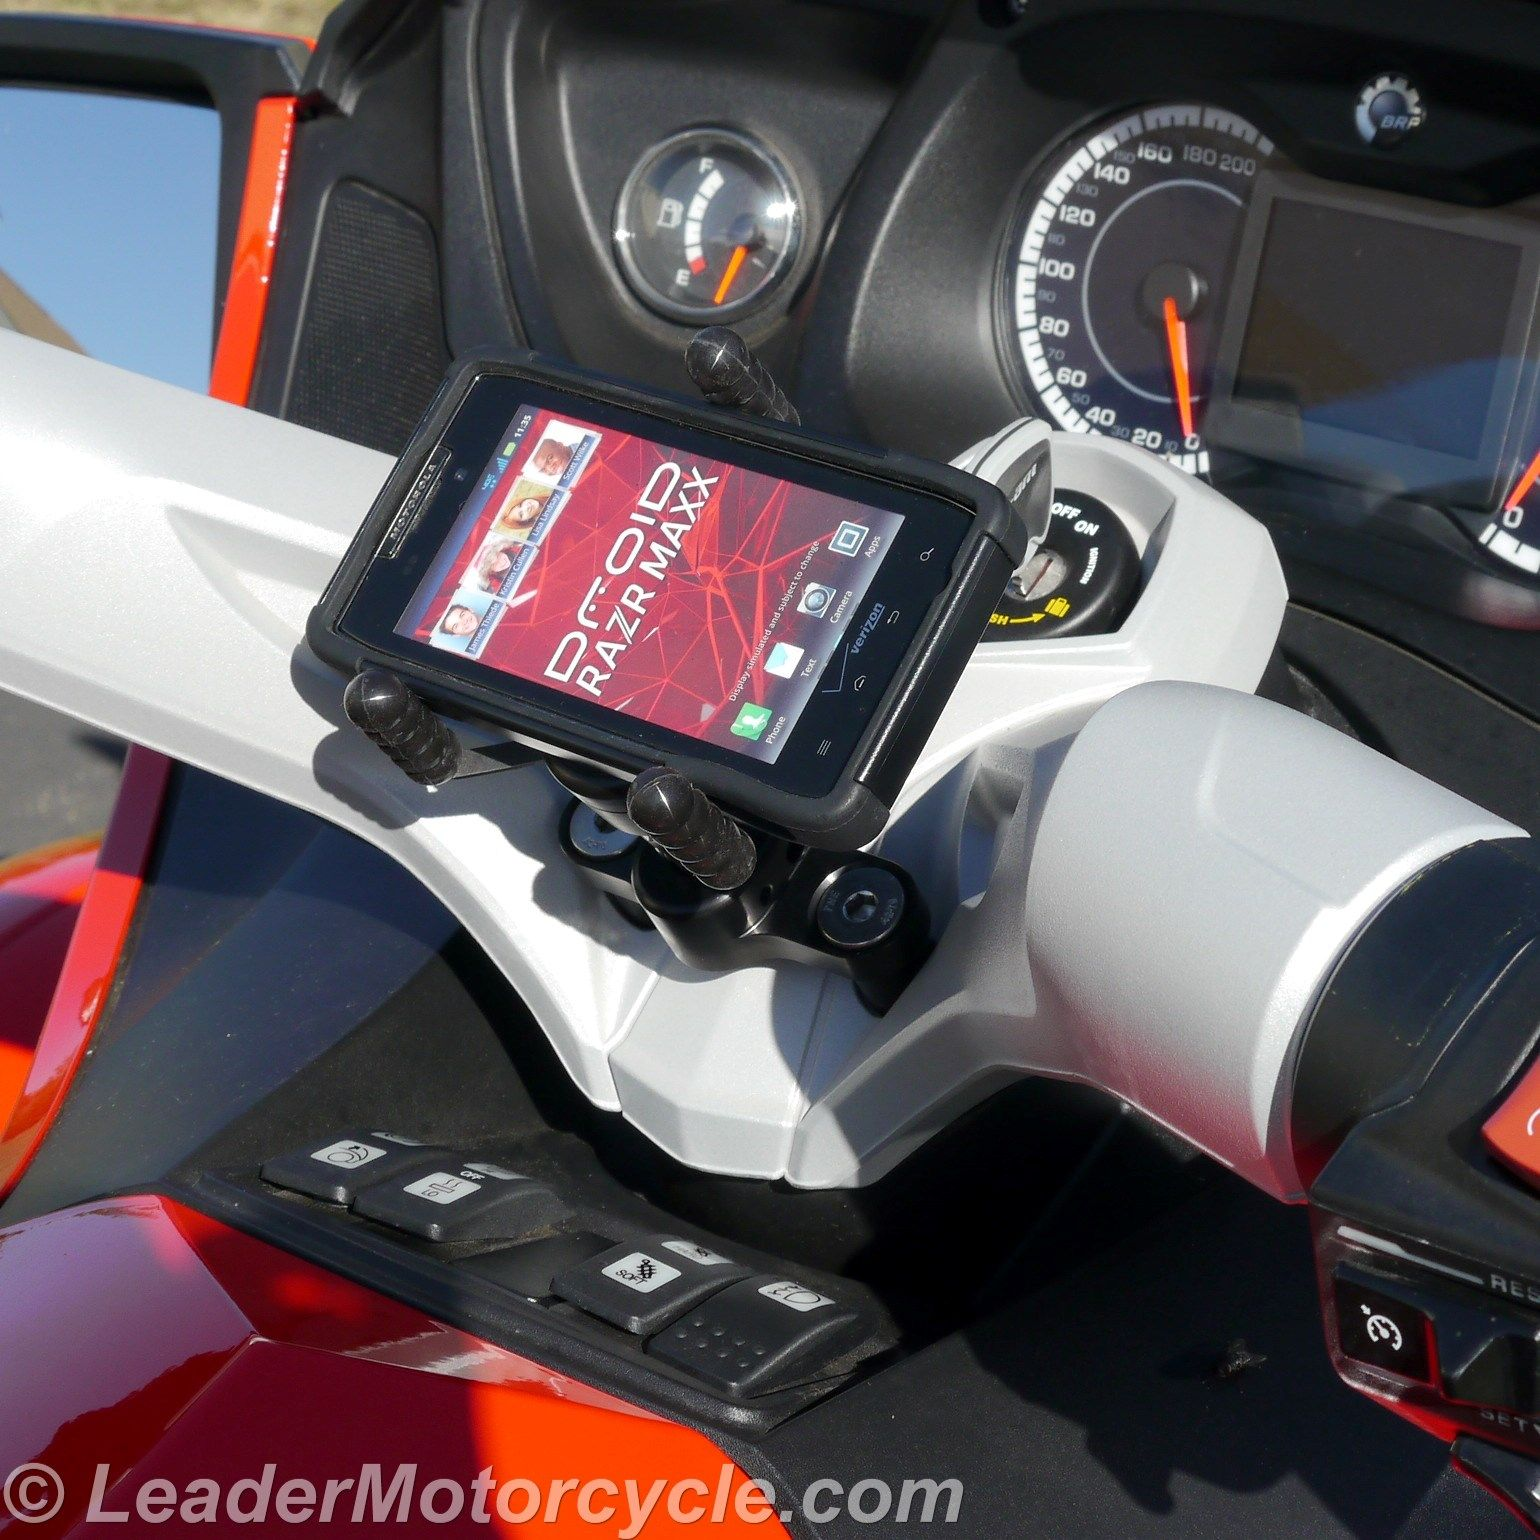 Http www leadermotorcycle com ecaddy tri grip phone holder can am spyder center mount ecaddy tri grip phone mount was designed for larger phones both